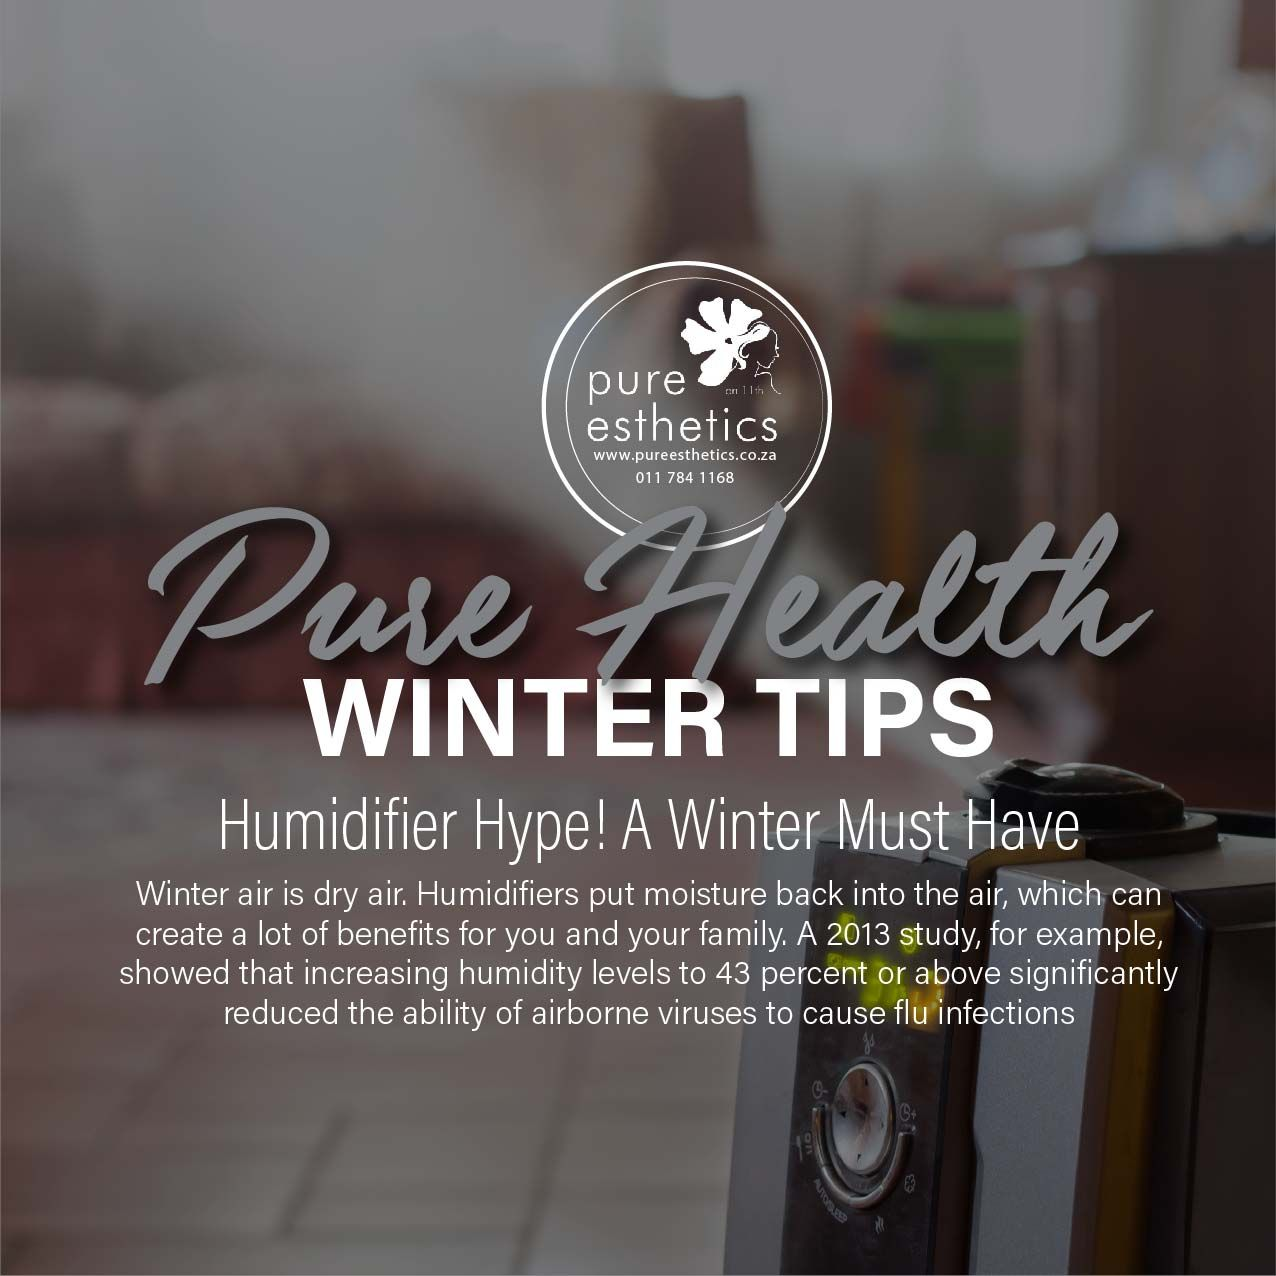 PURE Health WINTER Tips Humidifier Hype! A Winter Must